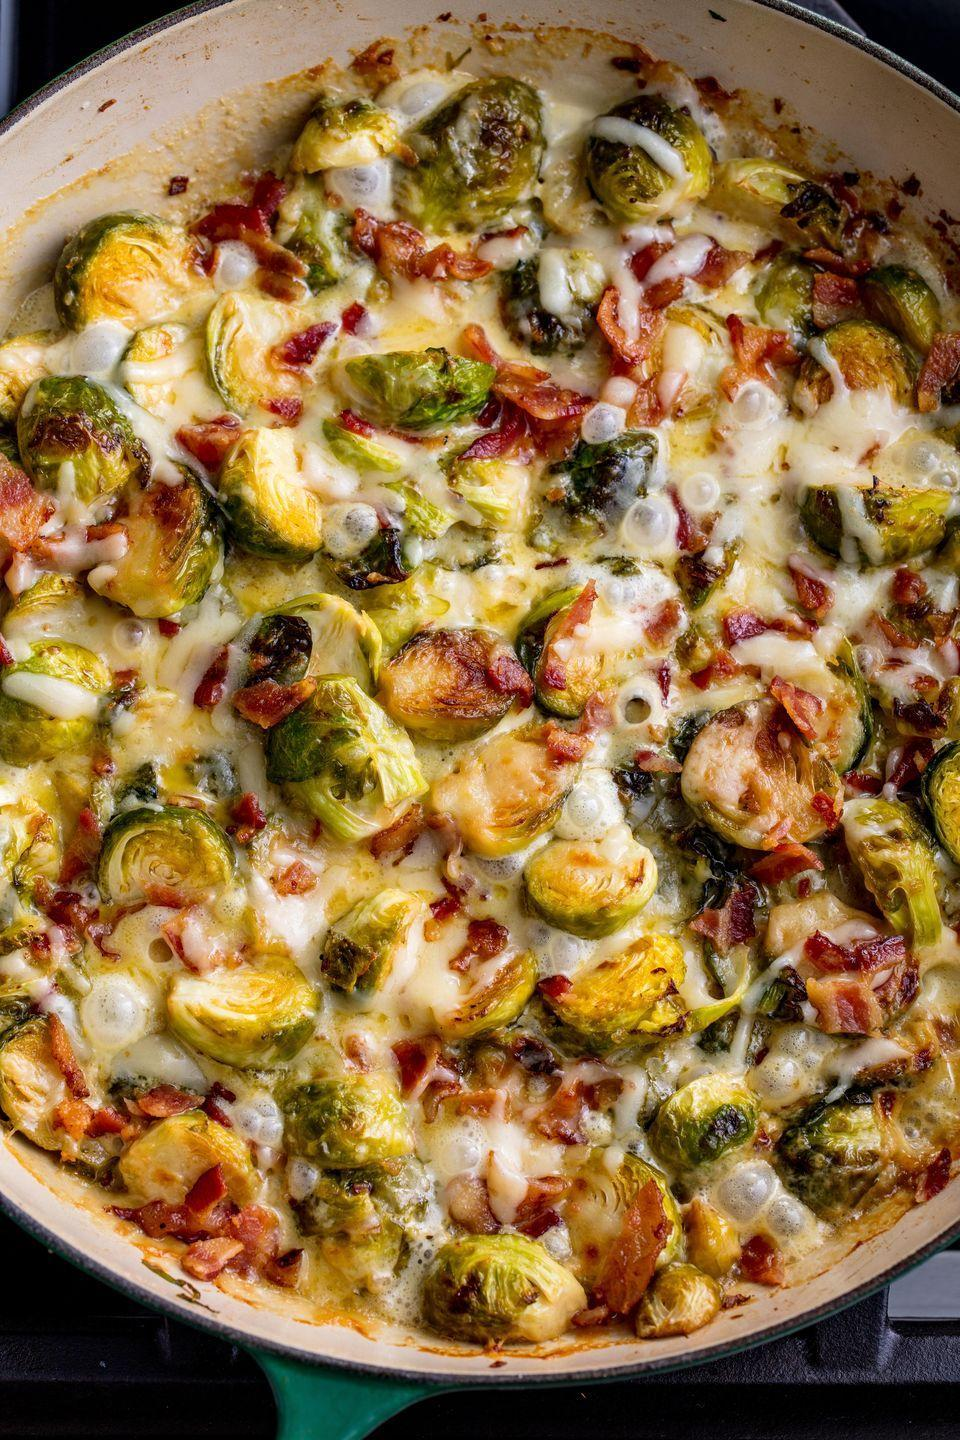 """<p>The one side that will make everyone freak out (and run for seconds). If you have vegetarian guests, feel free to skip the bacon! We're all about the smoky flavour, but for this dish, it's all about the CHEESE. </p><p>Find the recipe from <a href=""""https://www.delish.com/uk/cooking/recipes/a28924372/cheesy-brussels-sprout-casserole-recipe/"""" rel=""""nofollow noopener"""" target=""""_blank"""" data-ylk=""""slk:Delish"""" class=""""link rapid-noclick-resp"""">Delish</a>.</p>"""